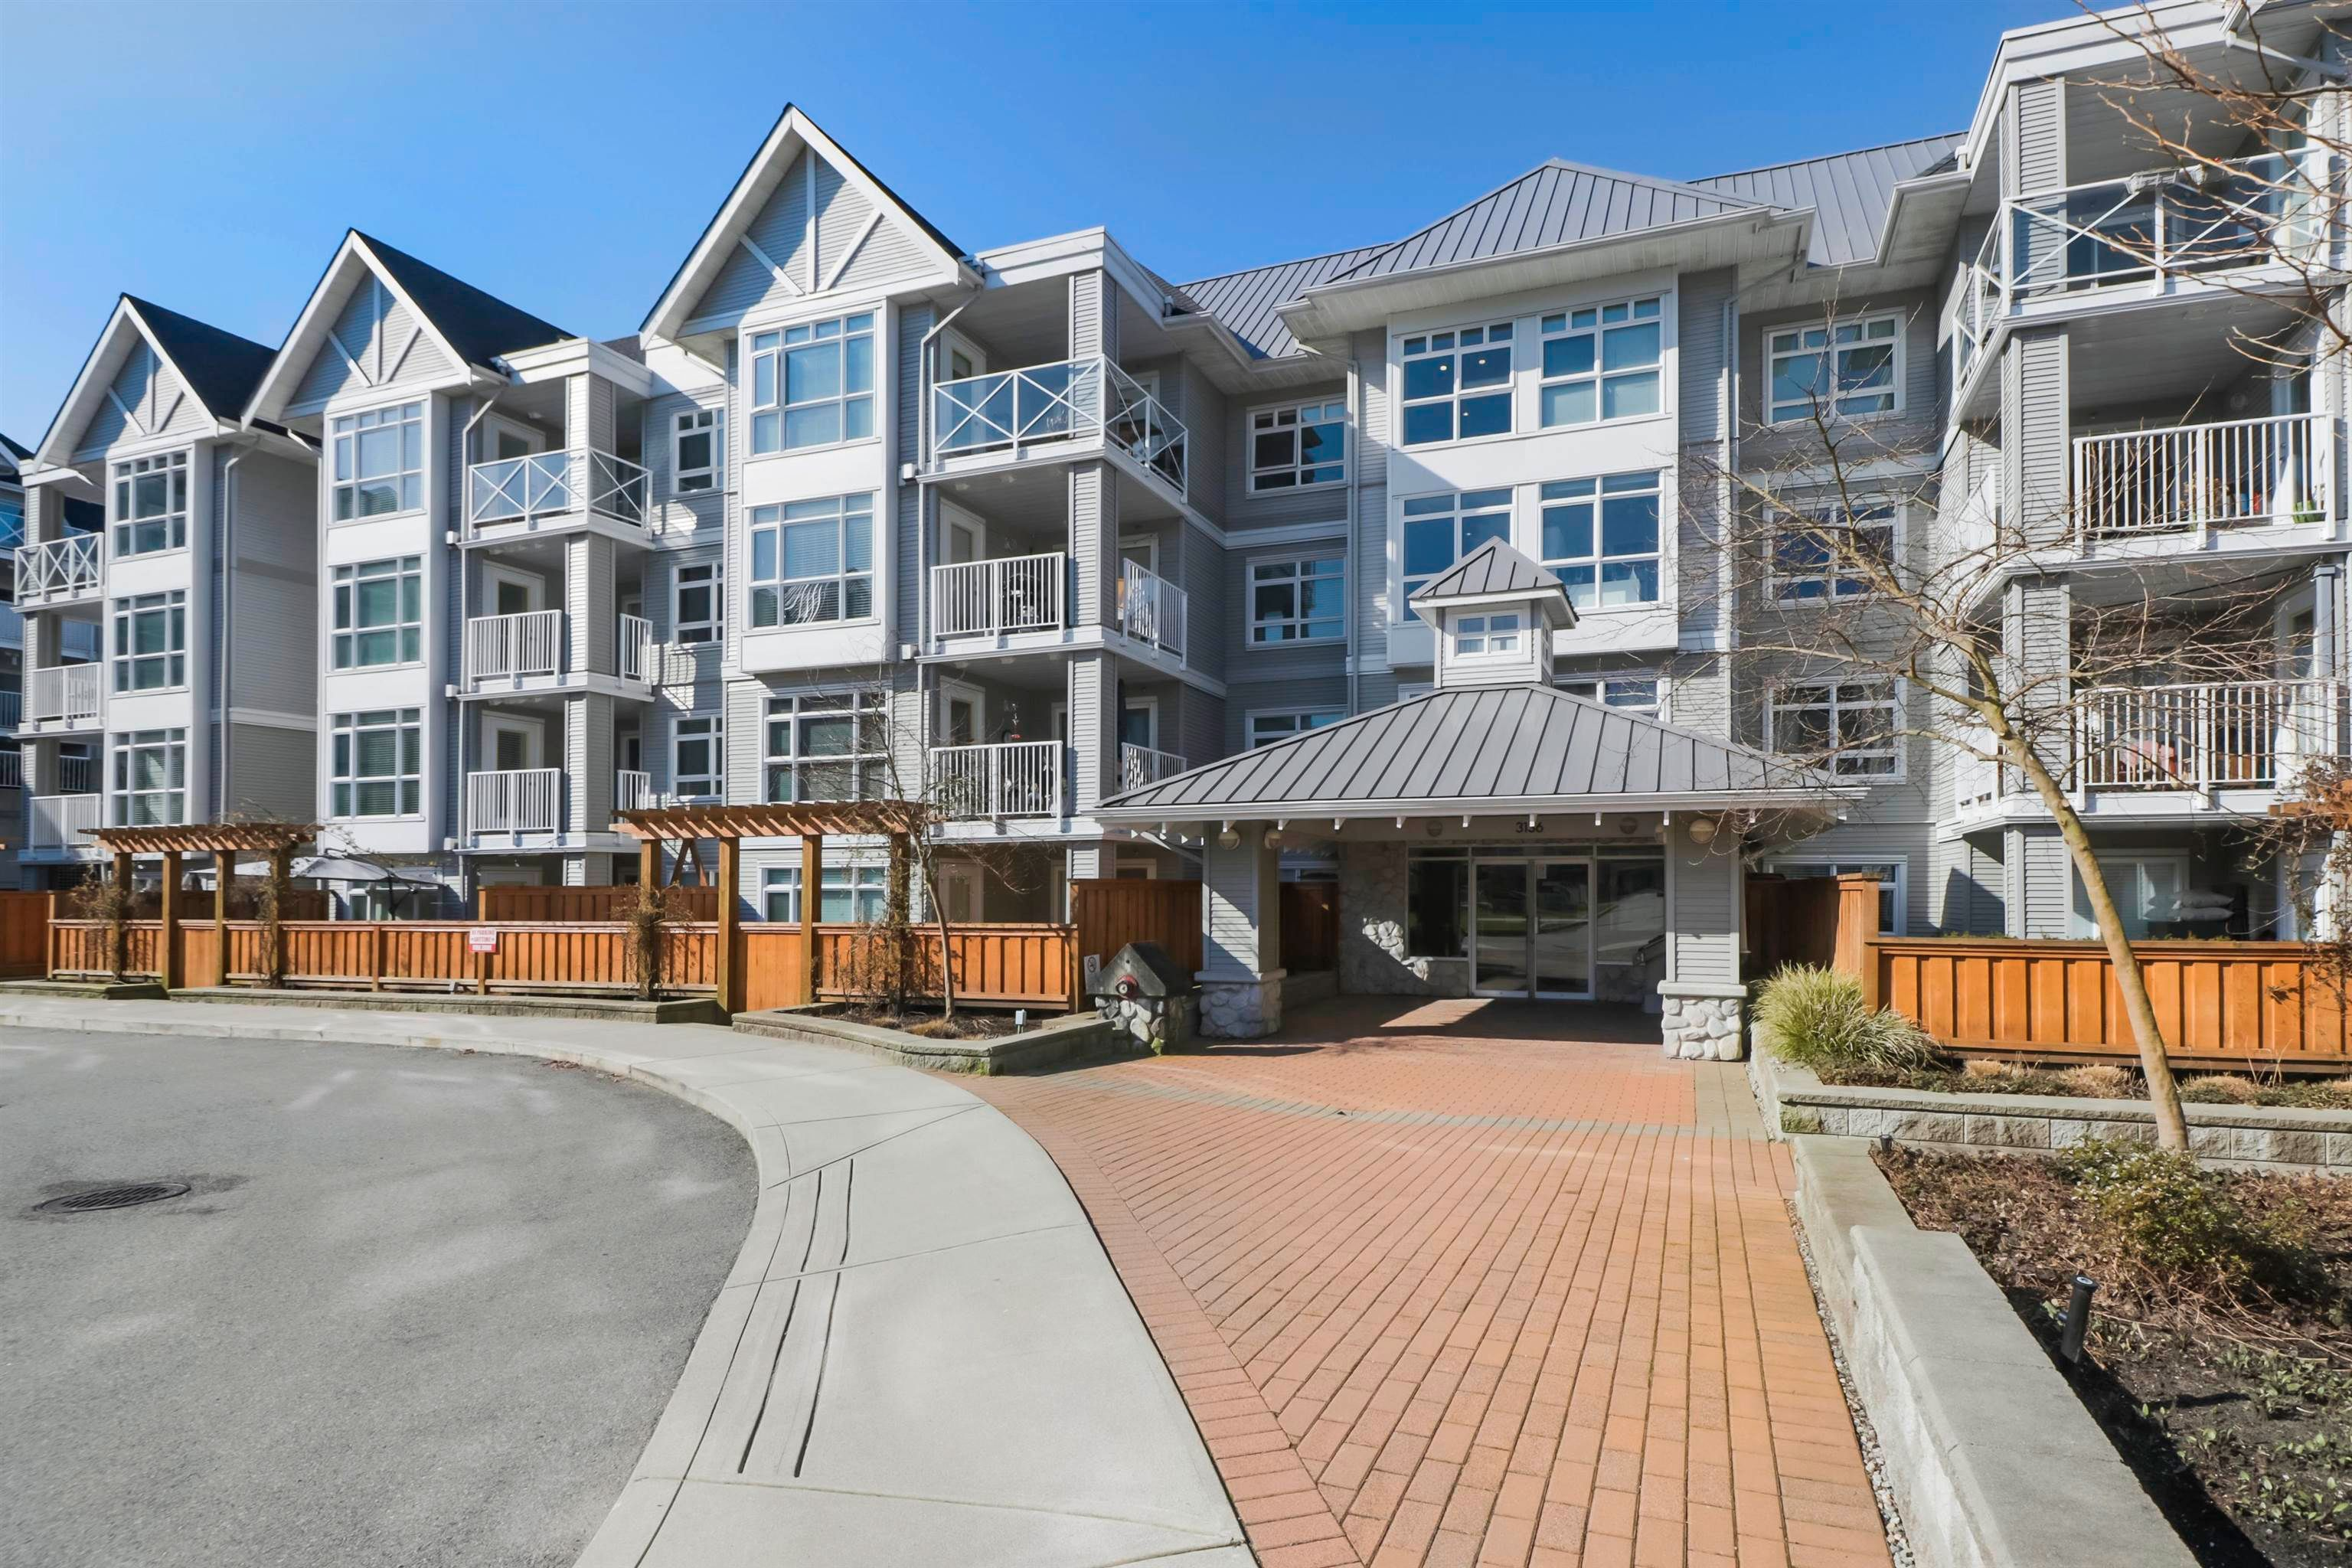 """Main Photo: 306 3136 ST JOHNS Street in Port Moody: Port Moody Centre Condo for sale in """"Sonrisa"""" : MLS®# R2615170"""